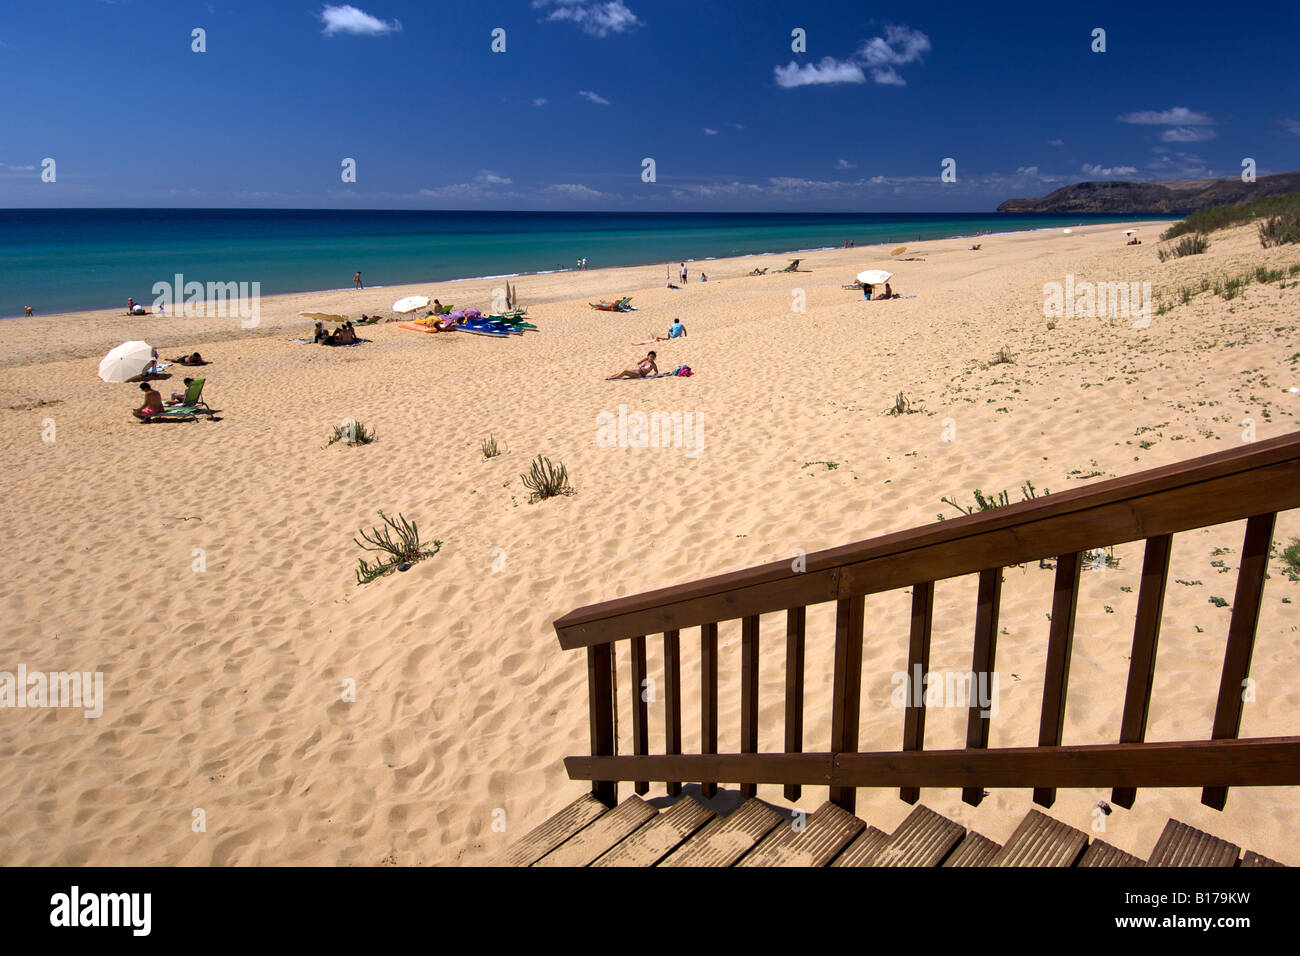 View along the beach of the Portuguese Atlantic island of Porto Santo. - Stock Image